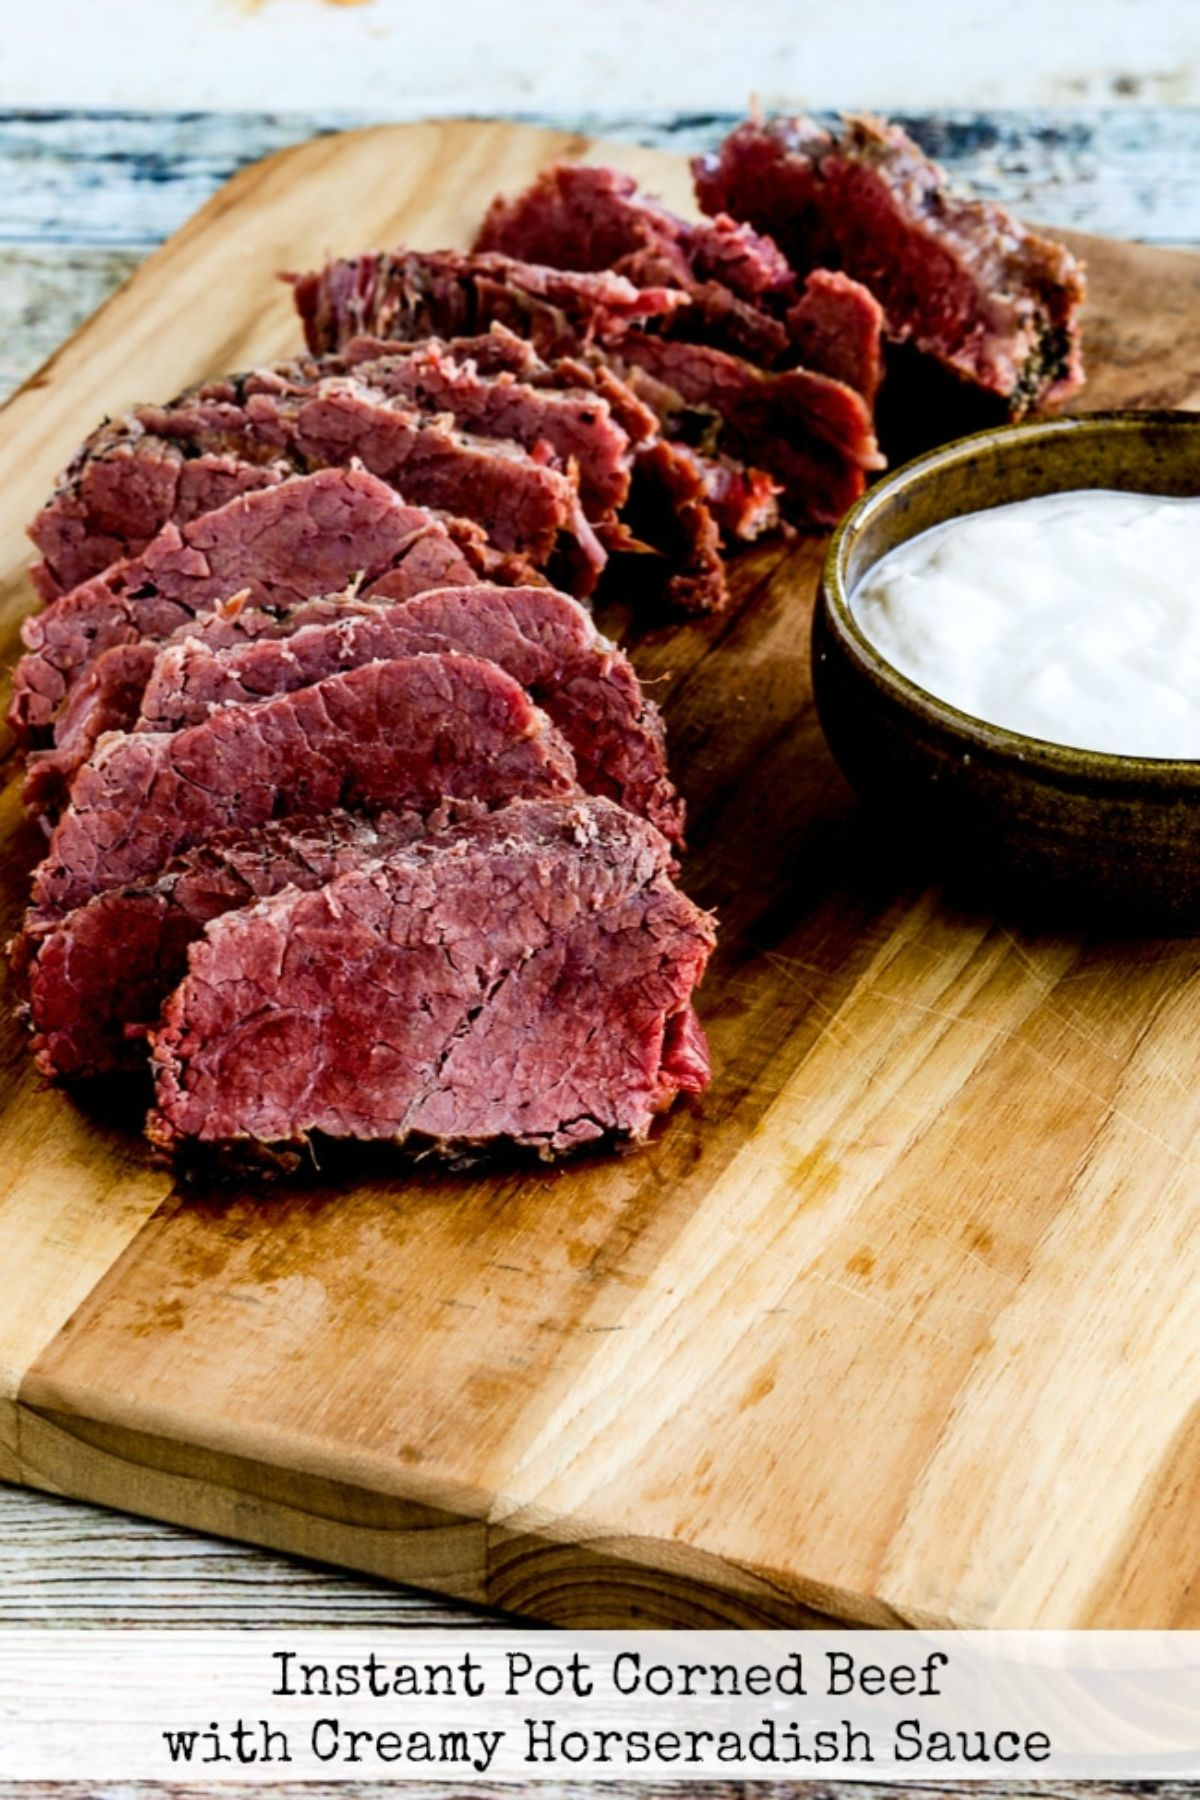 ON a wooden board are slices of beef laid out on top of each other. To the right is a round dish filled with horseradish sauce